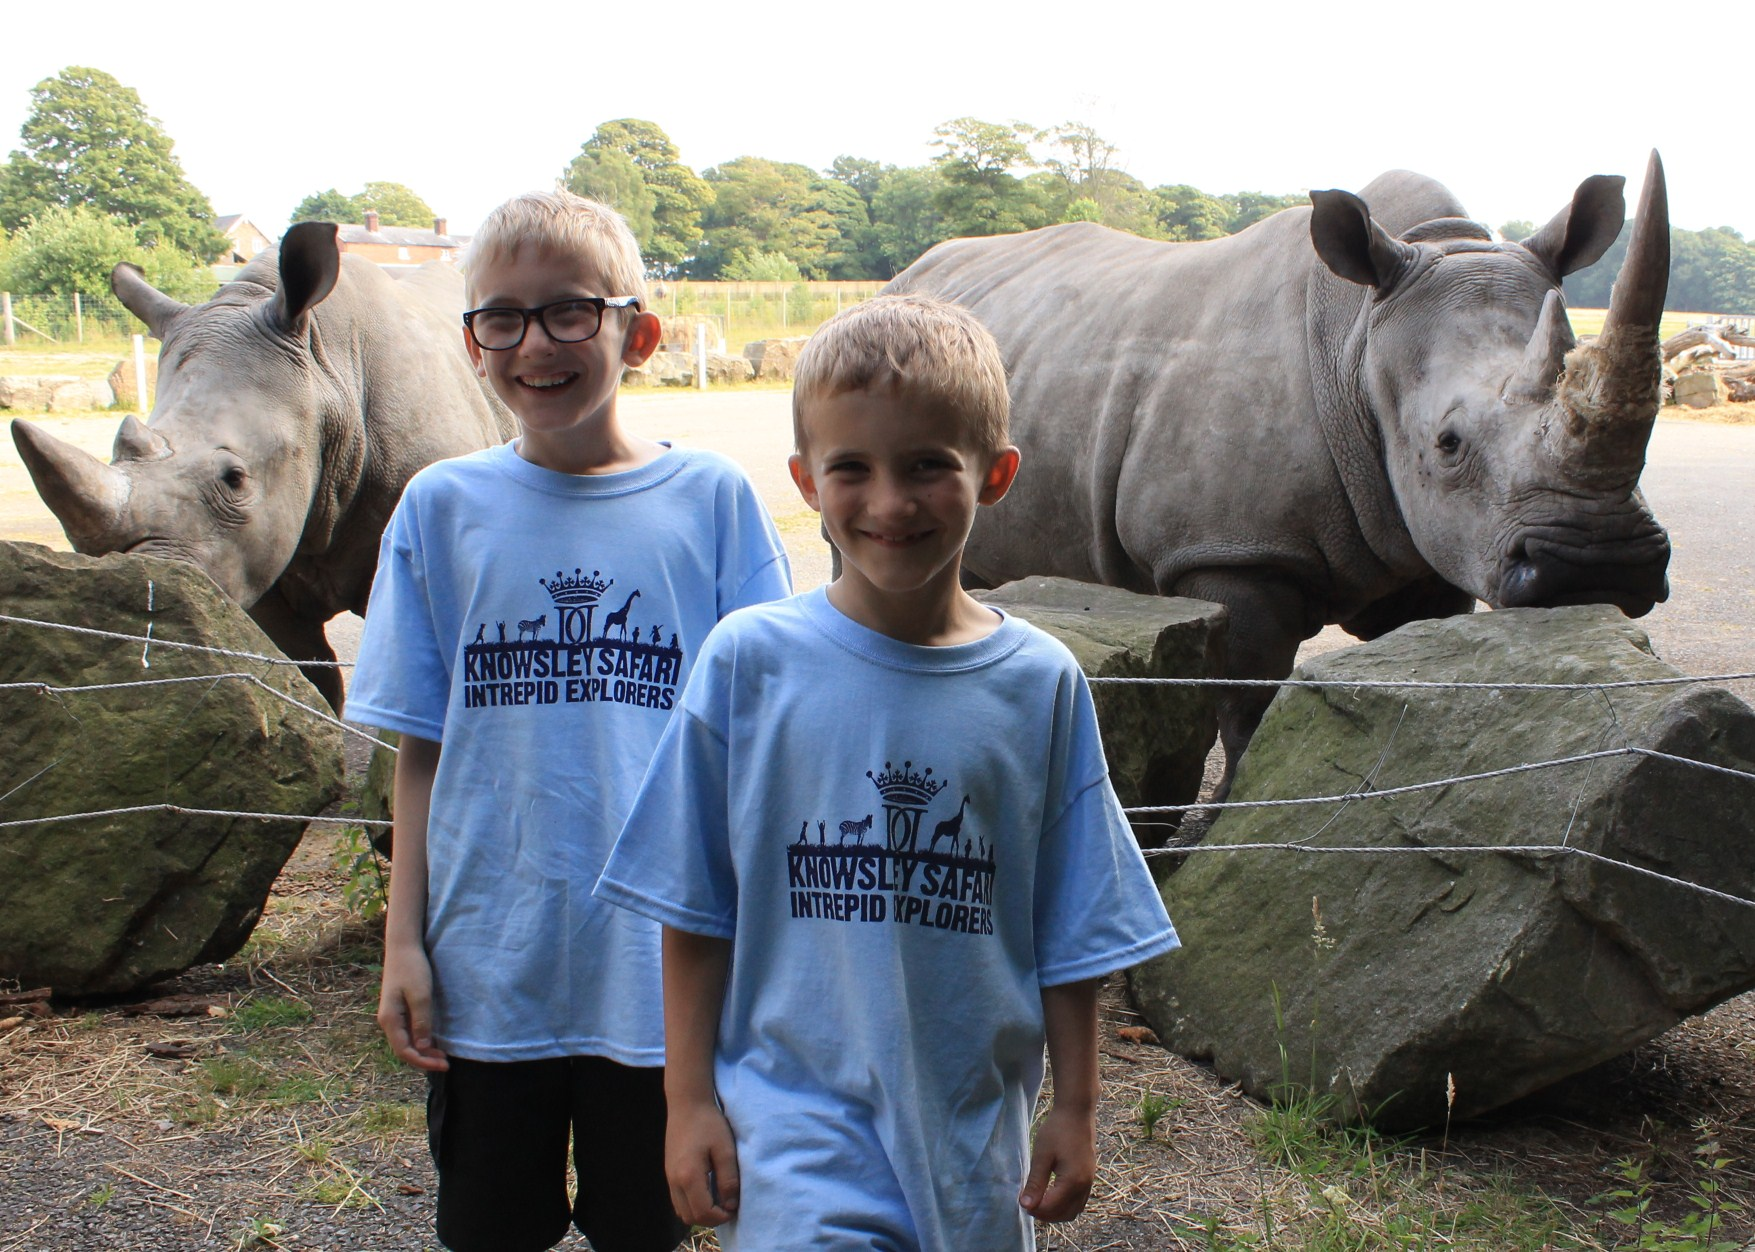 Intrepid Explorers and friends at Knowsley Safari Park